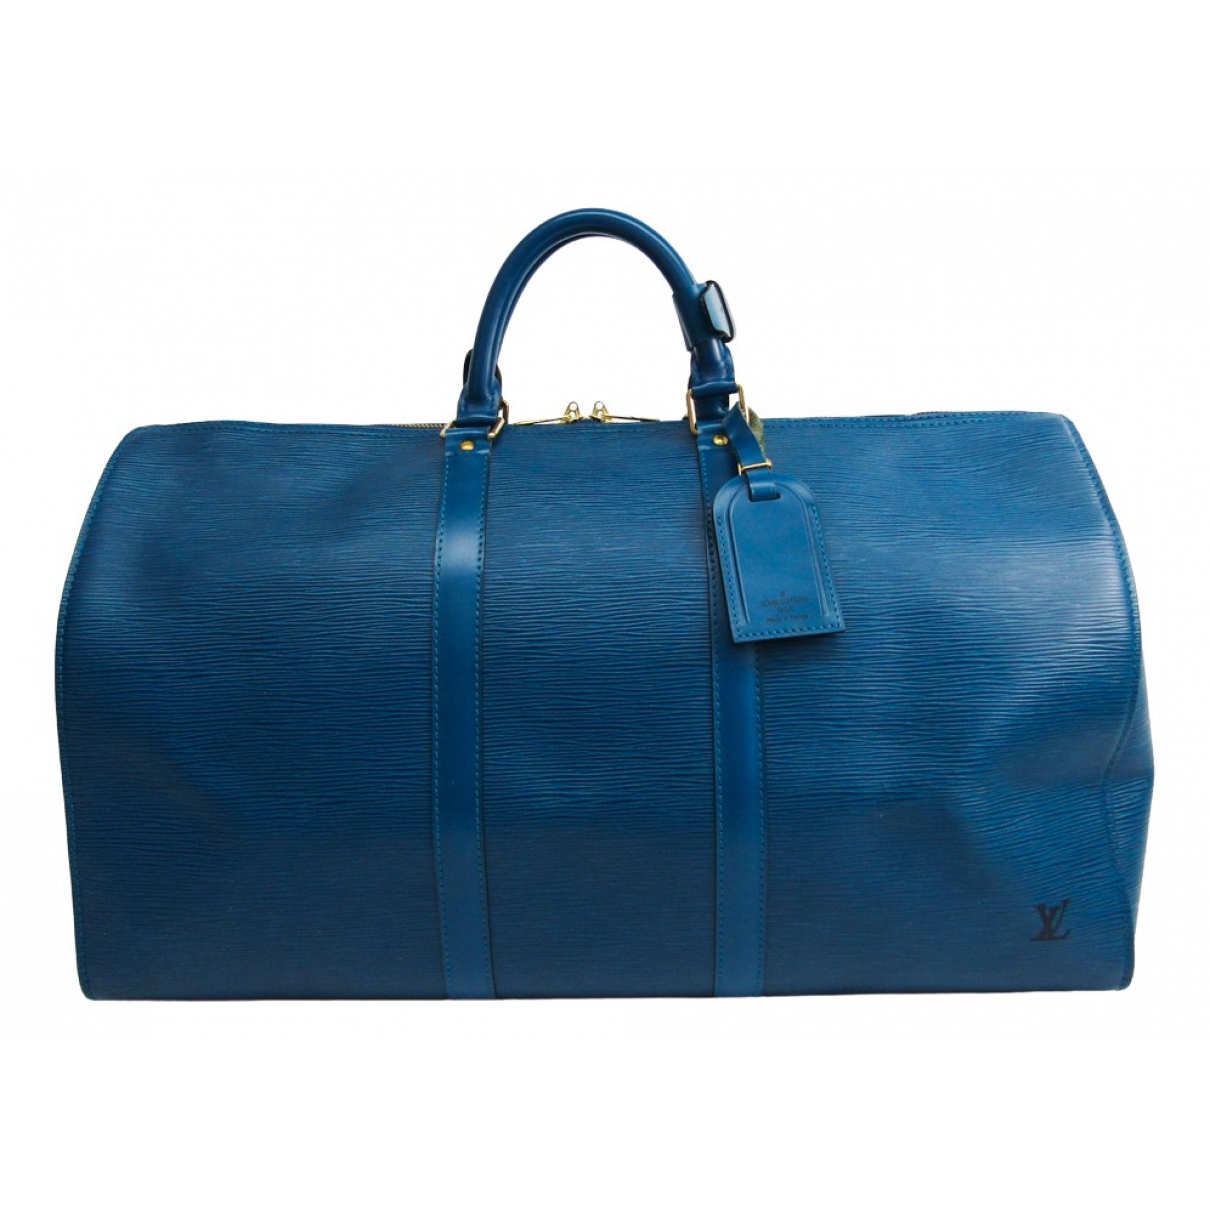 Louis Vuitton Keepall Blue Leather Travel bag for Women \N